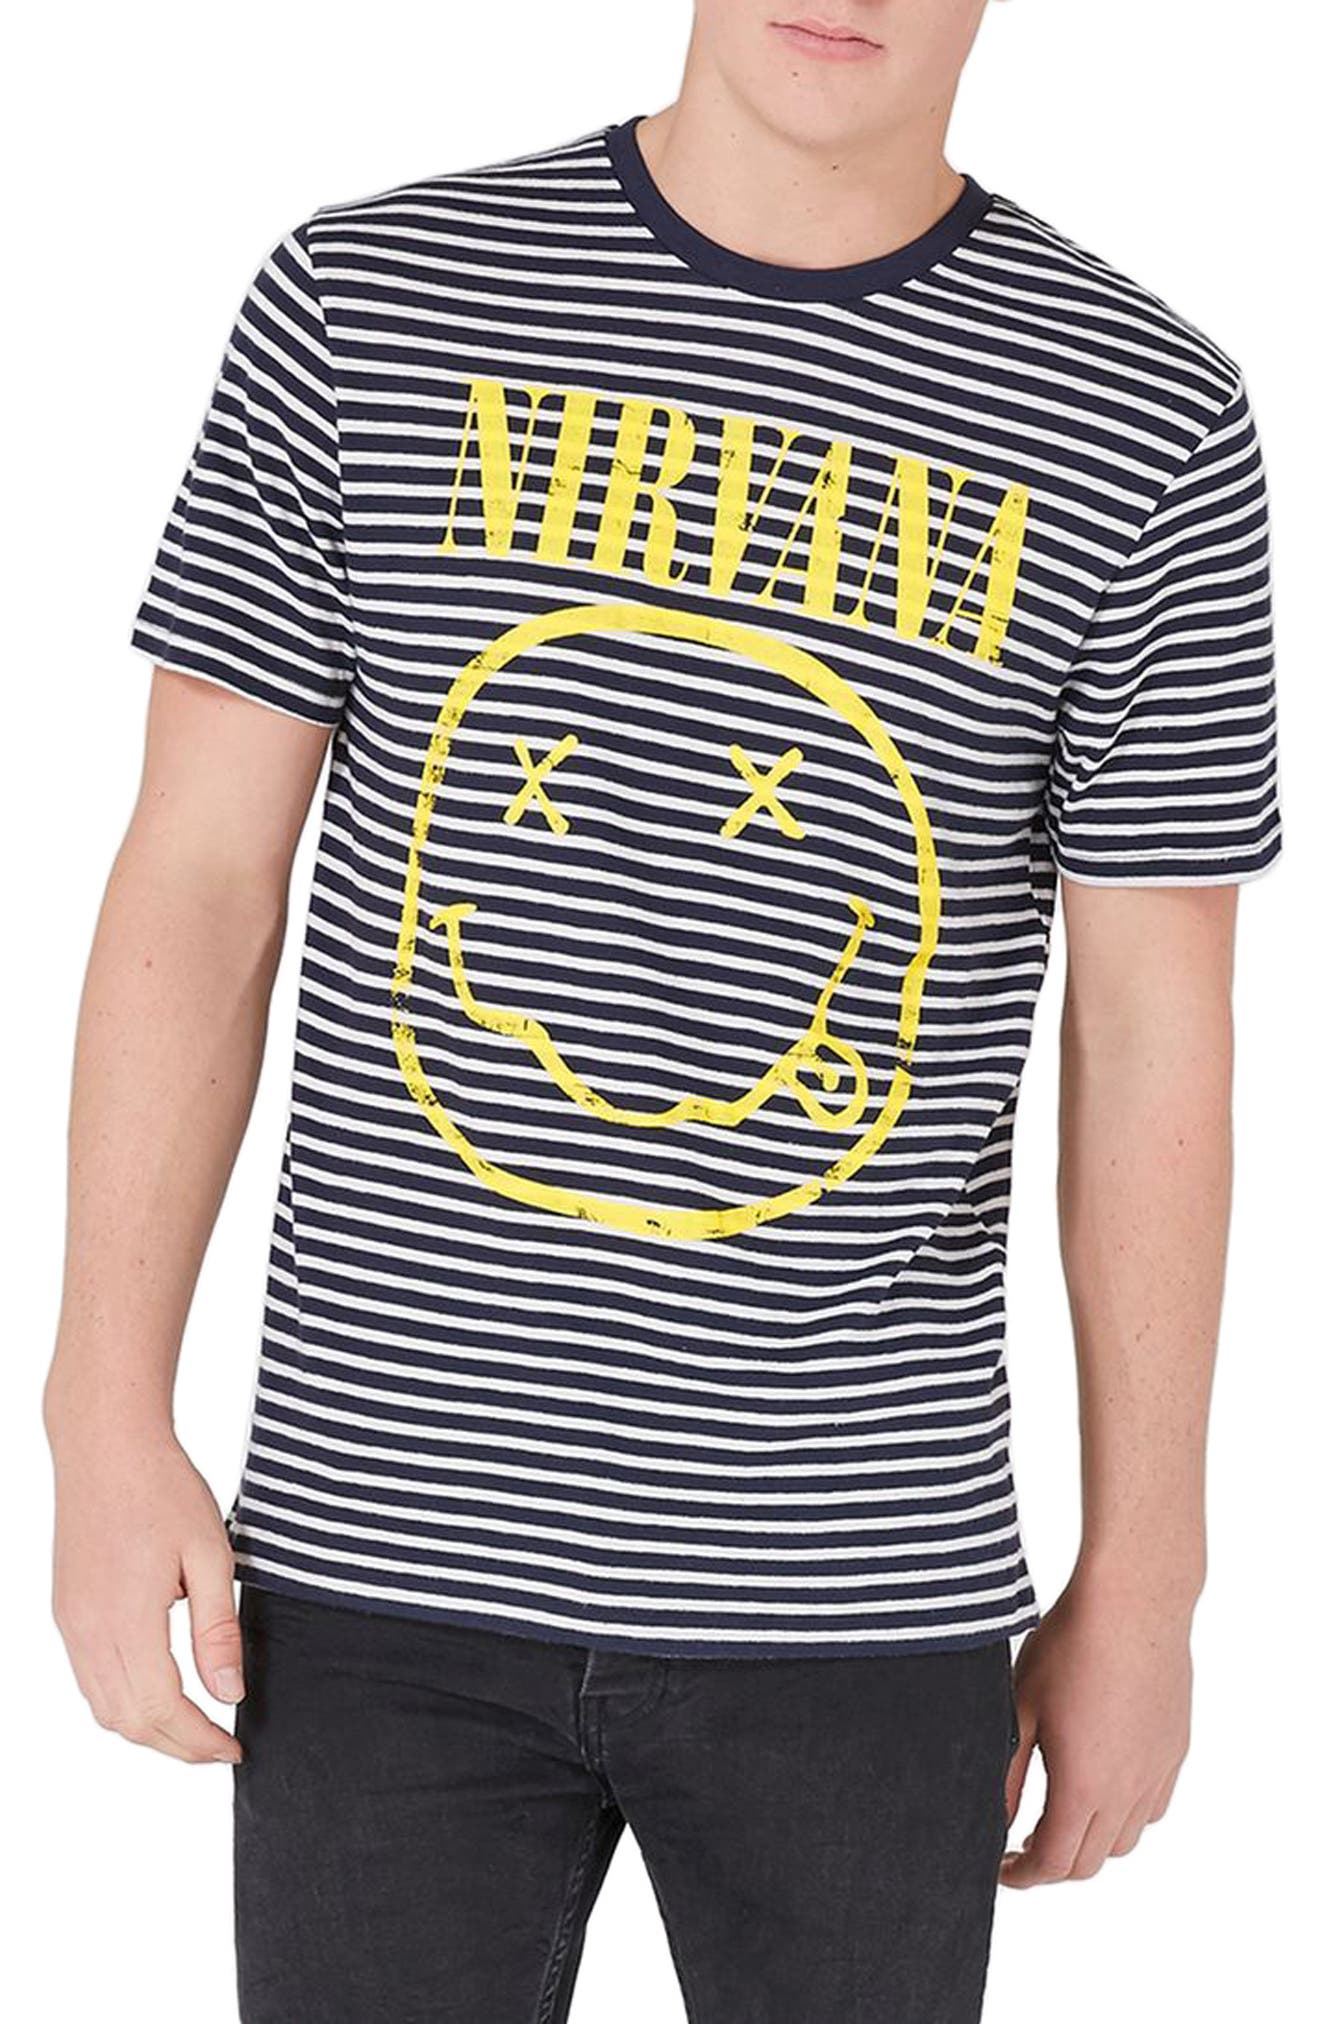 Topman Nirvana Stripe T-Shirt